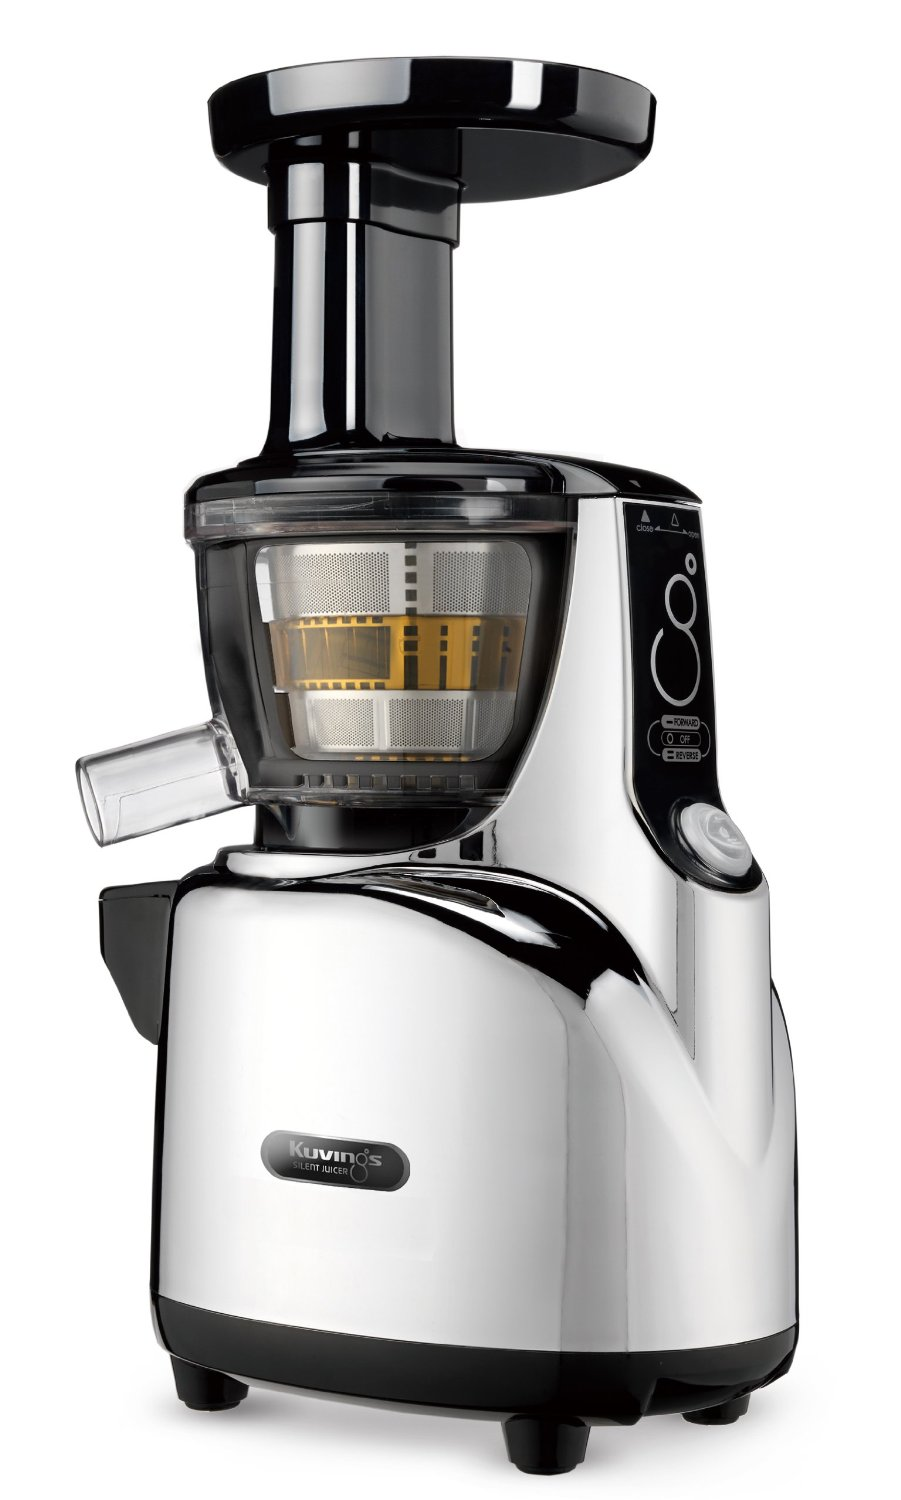 Kuvings Whole Juicer Reviews : 5 Best Kuvings Juicer Reviews UPDATED: 2018 The Home Savant